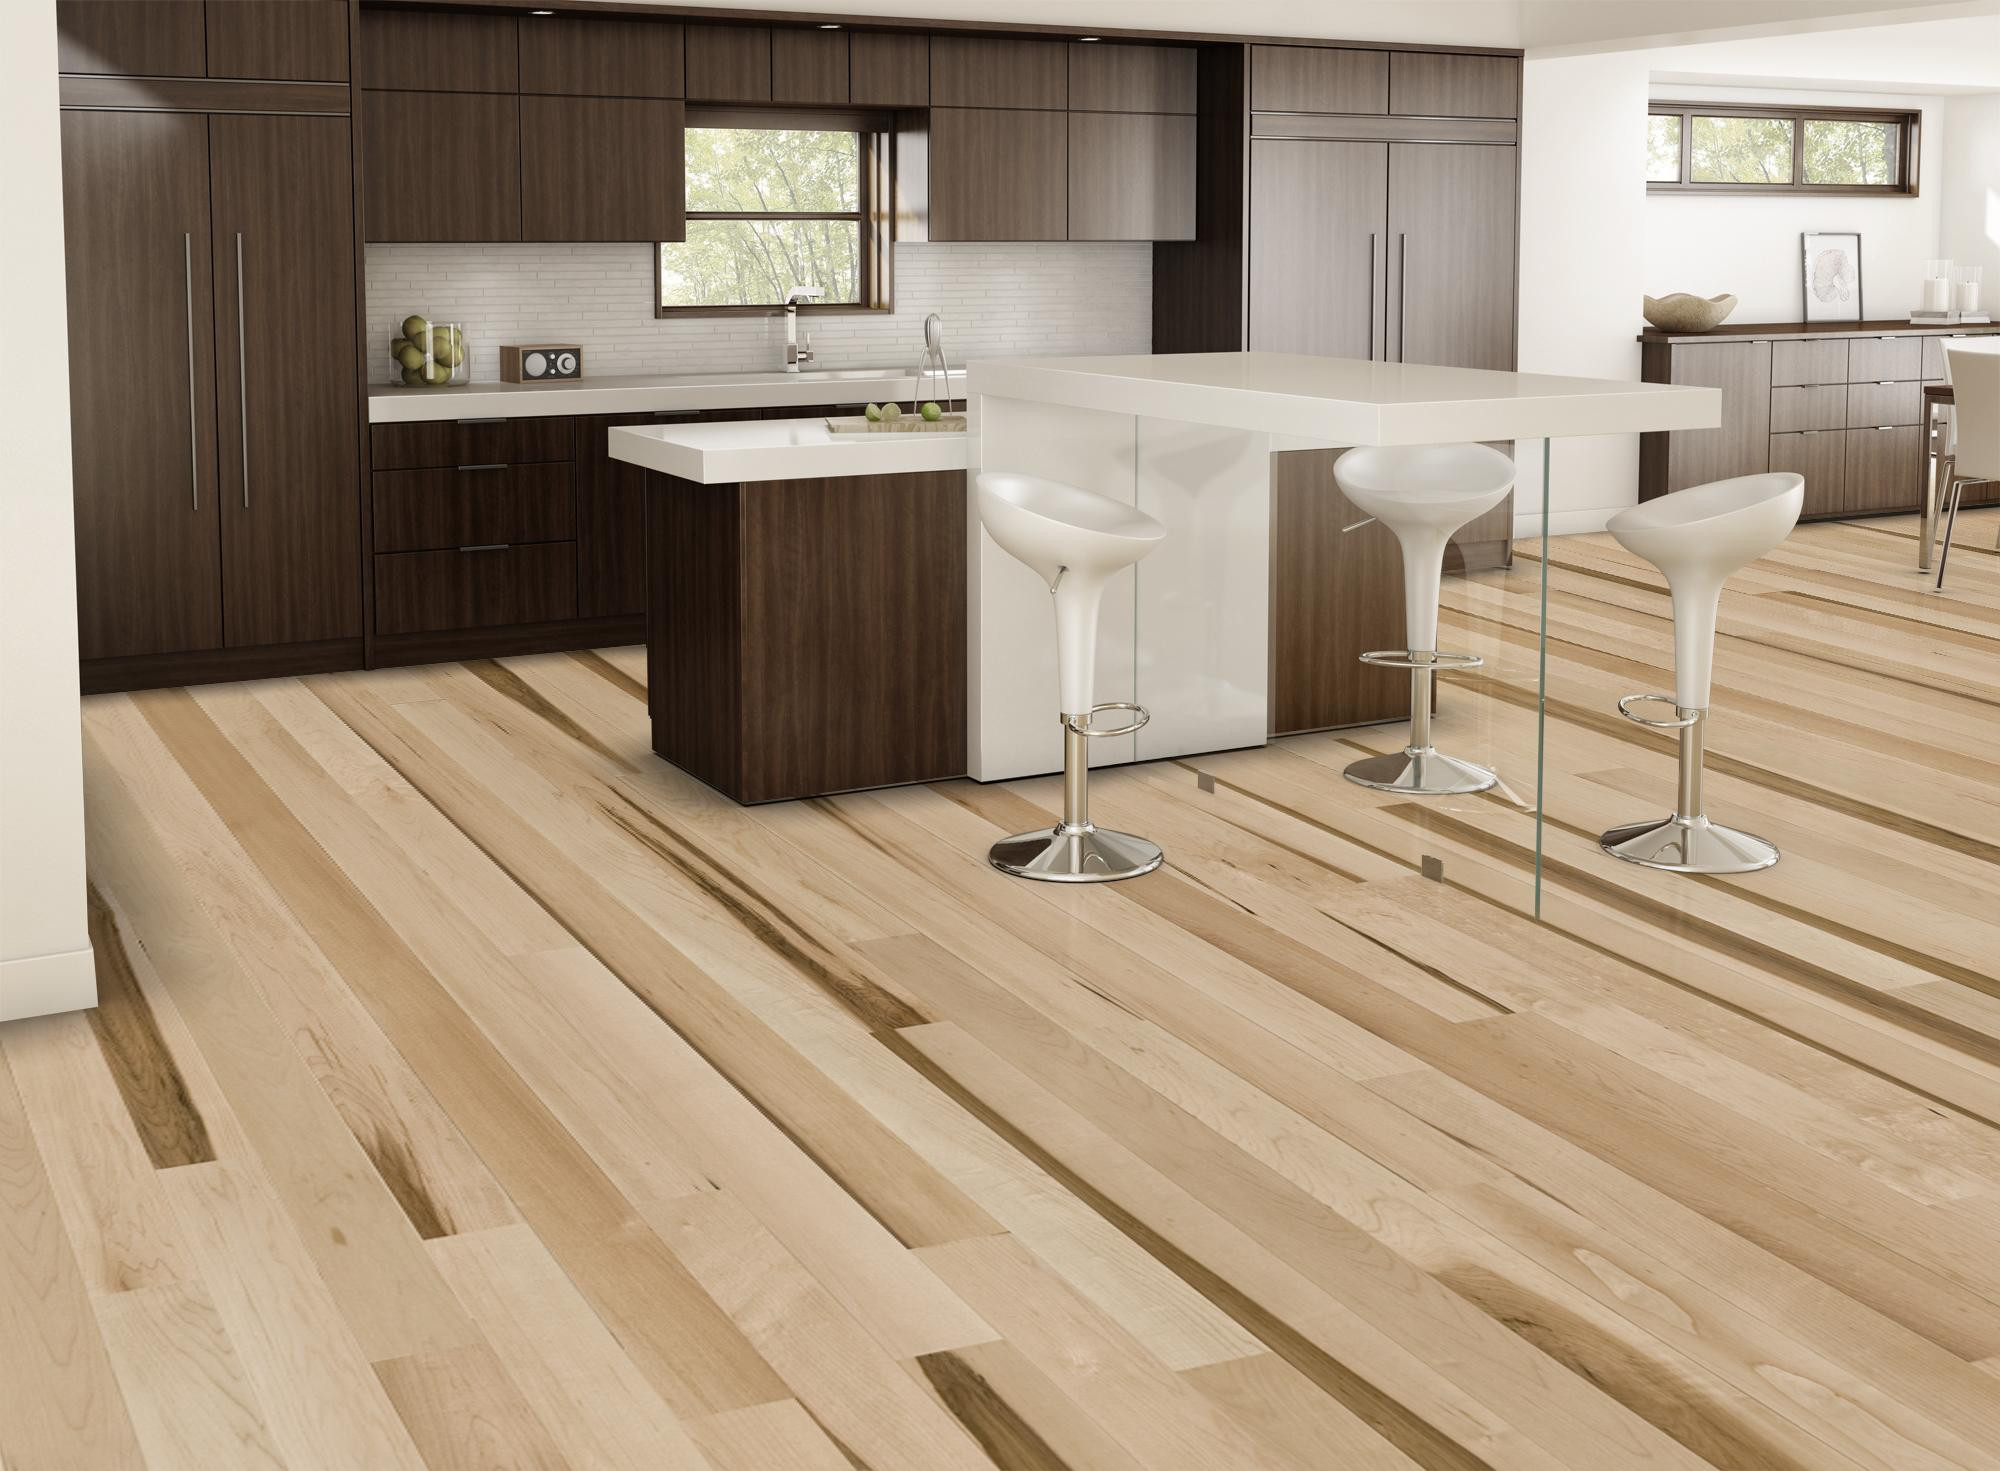 Unfinished Maple Hardwood Flooring Sale Of Kingsmill Natural Maple 4 Wide 3 4 solid Hardwood Flooring for Kingsmill Natural Maple 4 Wide 3 4 solid Hardwood Flooring Room